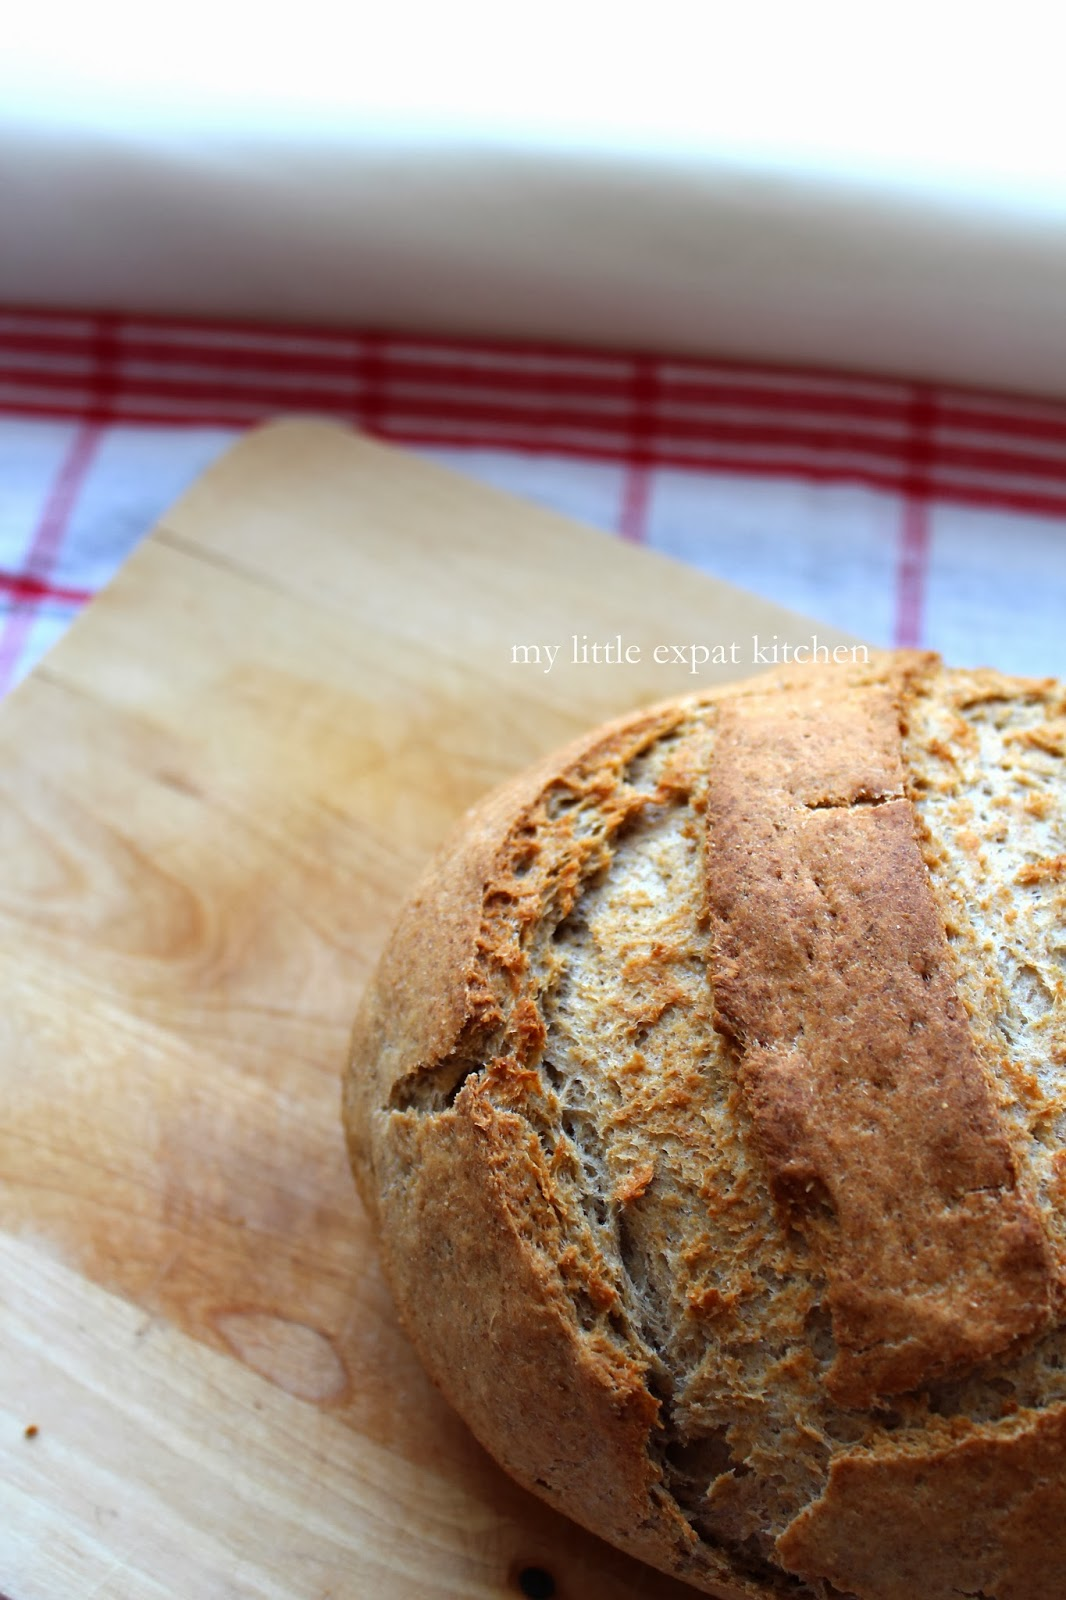 It Has An Earthy Nutty Flavor That S Difficult To Find In Other Loaves It Has A Hard Crust And A Soft Yet Dense Crumb That S Ever So Slightly Moist With A